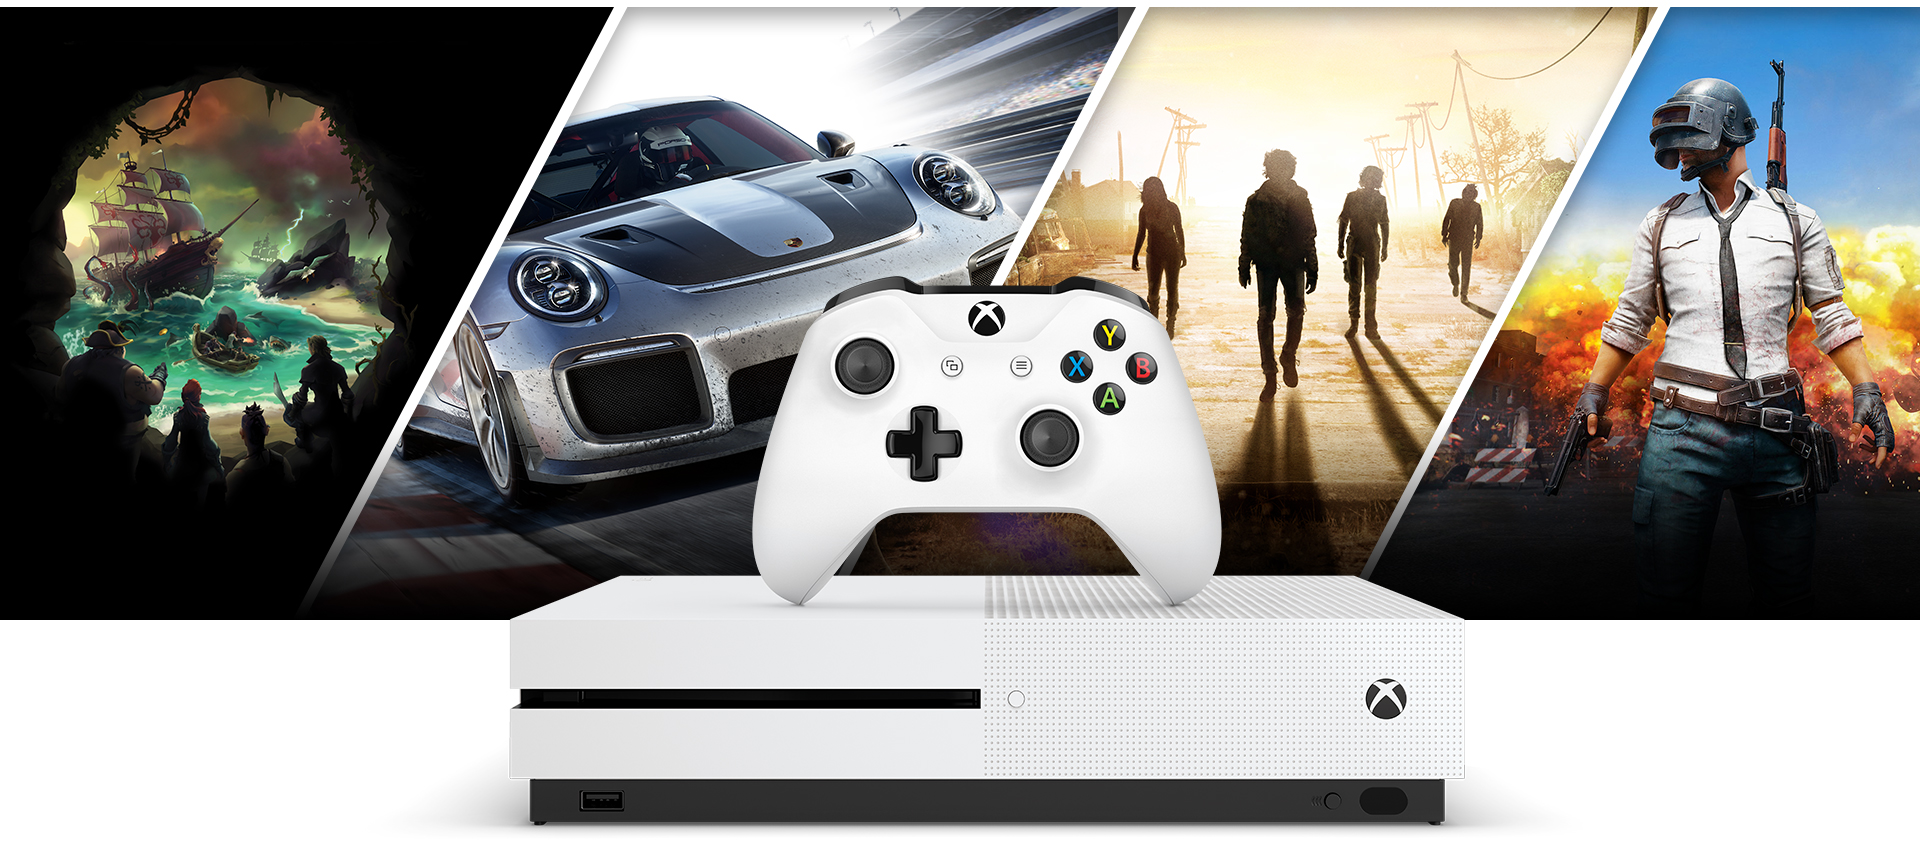 Gráficos de Sea of Thieves Forza 7 State of Decay 3 y Player Unknown's Battlegrounds detrás de una consola Xbox One S y un control Xbox blanco